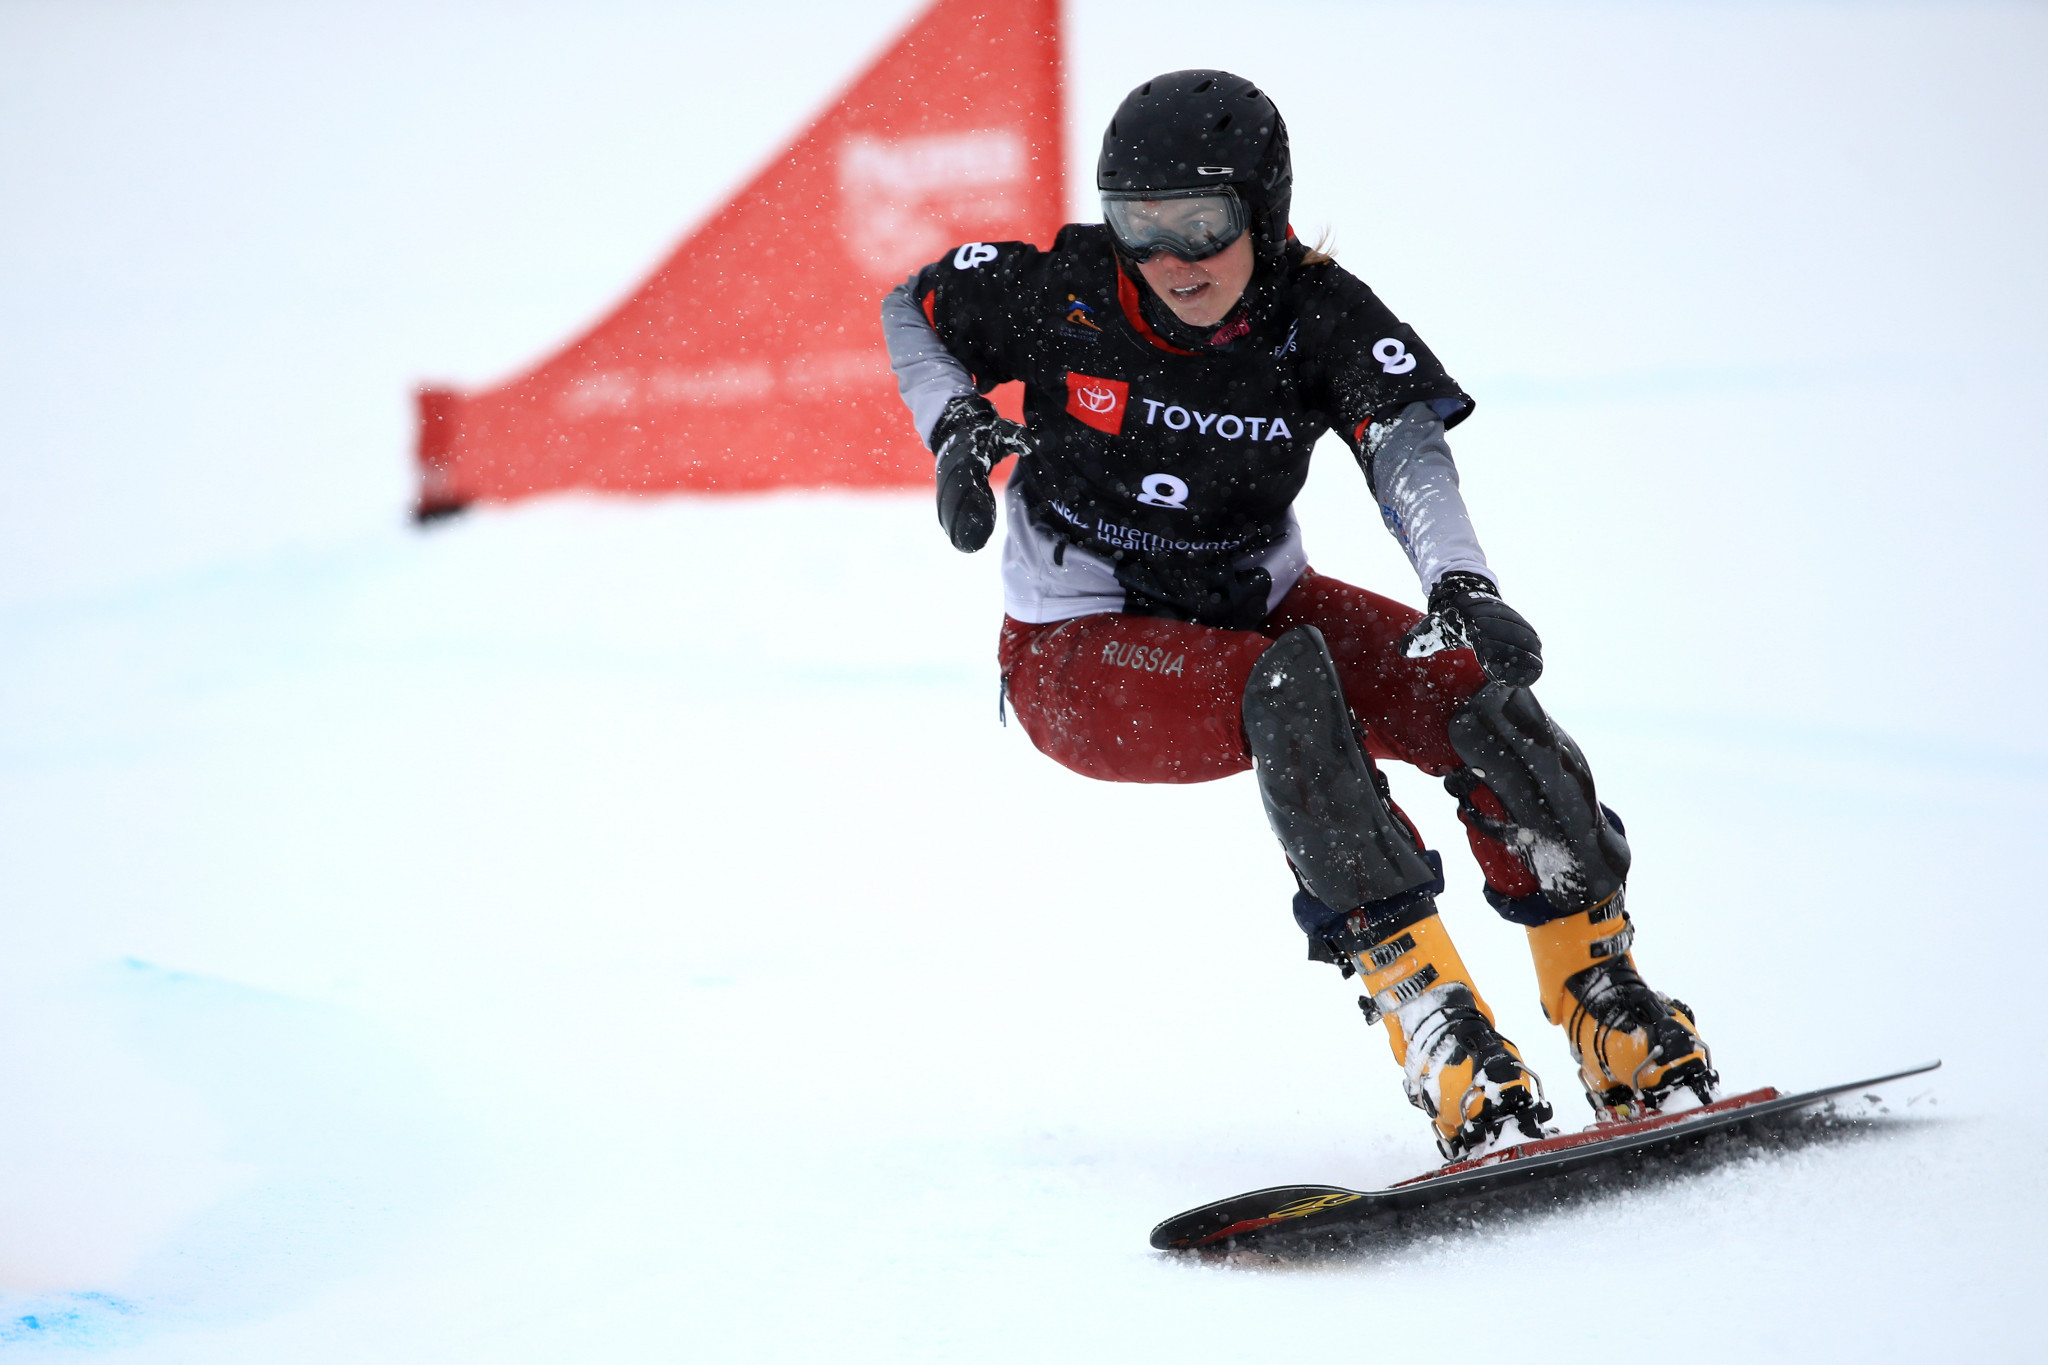 Milena Bykova won the women's event on the Swiss slopes ©Getty Images